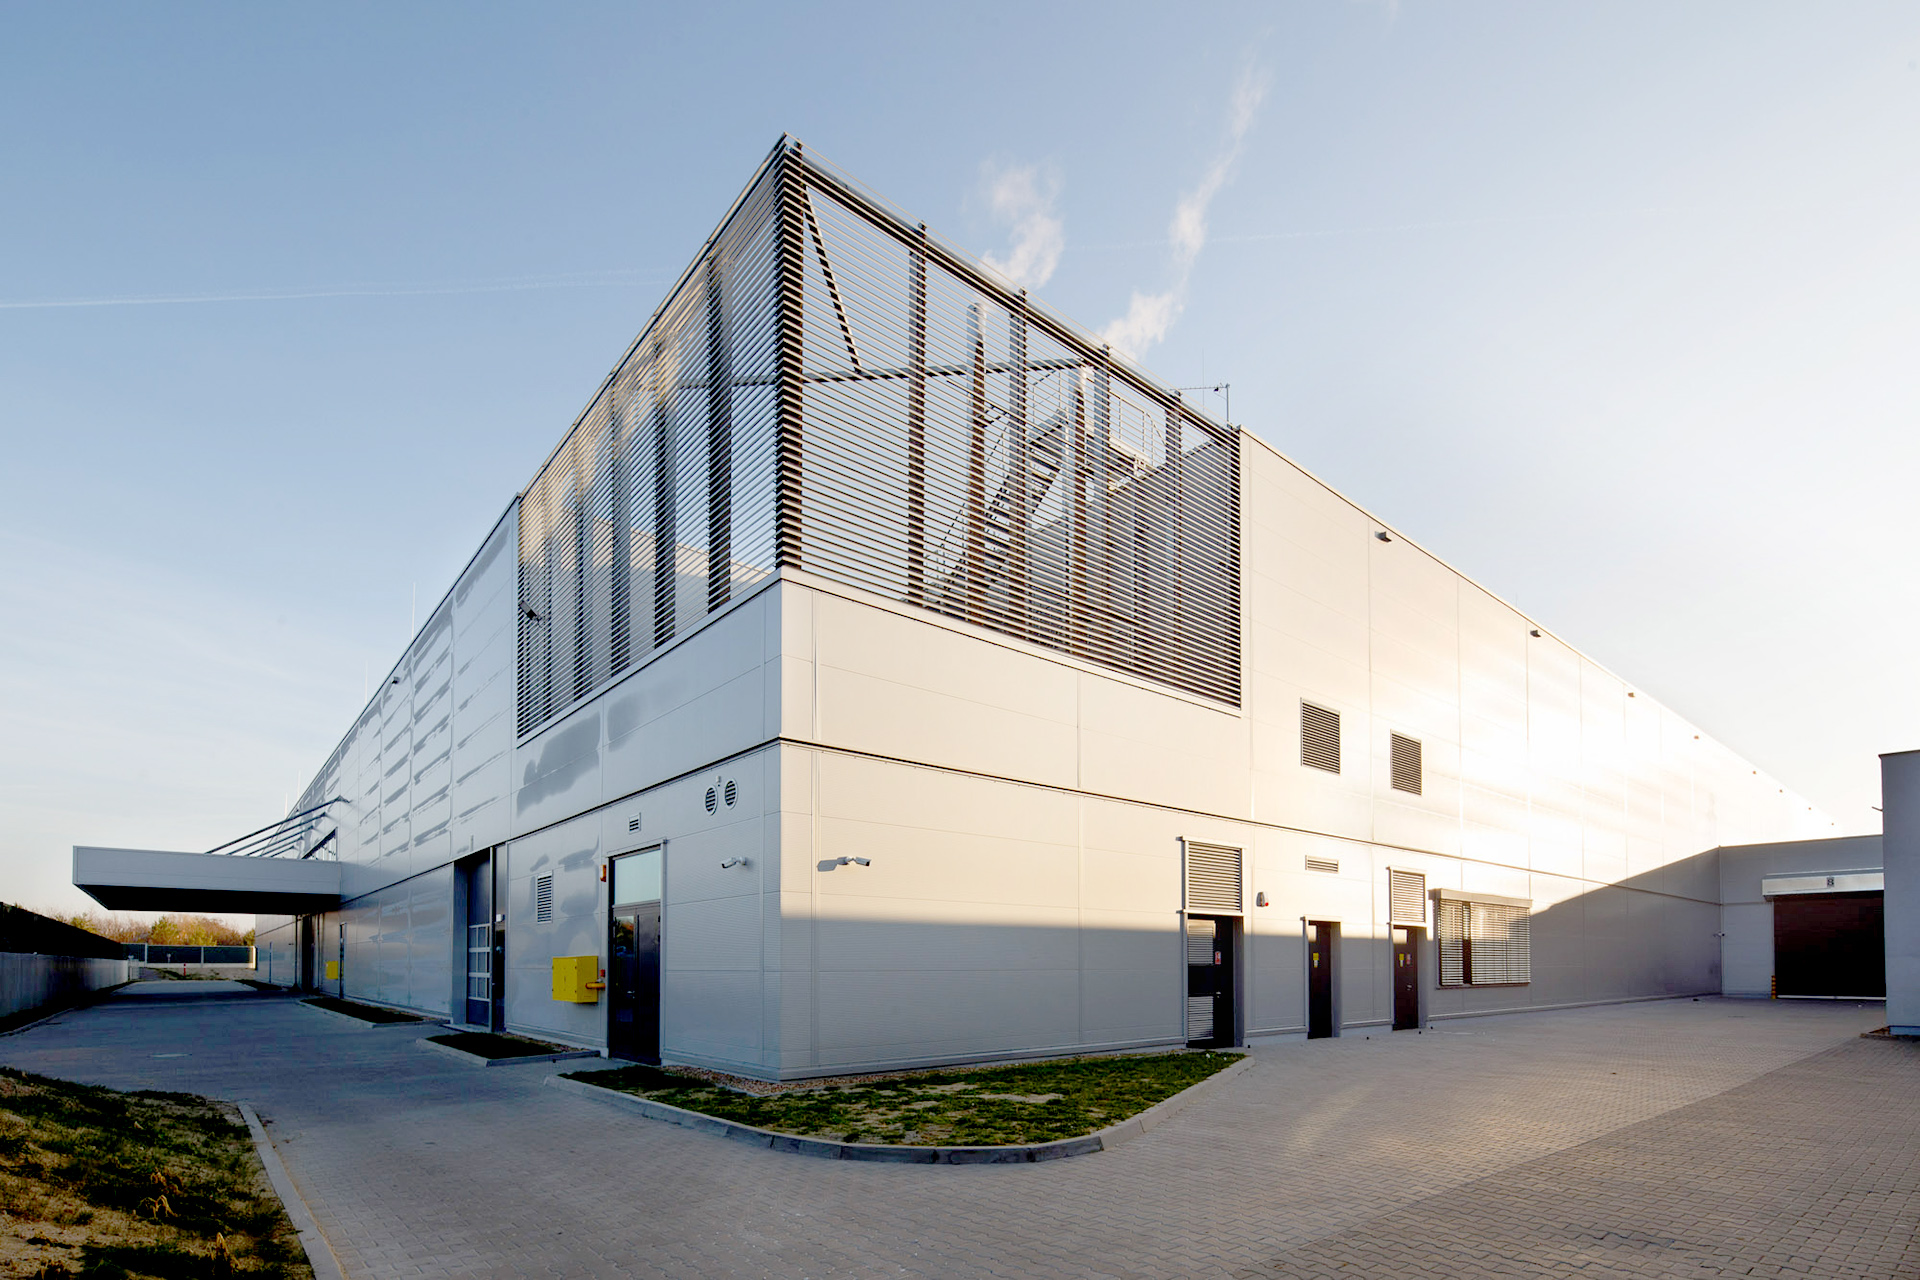 FIM Factory Extension for Acoustic elements for the automotive sector in Środa Śląska Poland built by Takenaka Europe